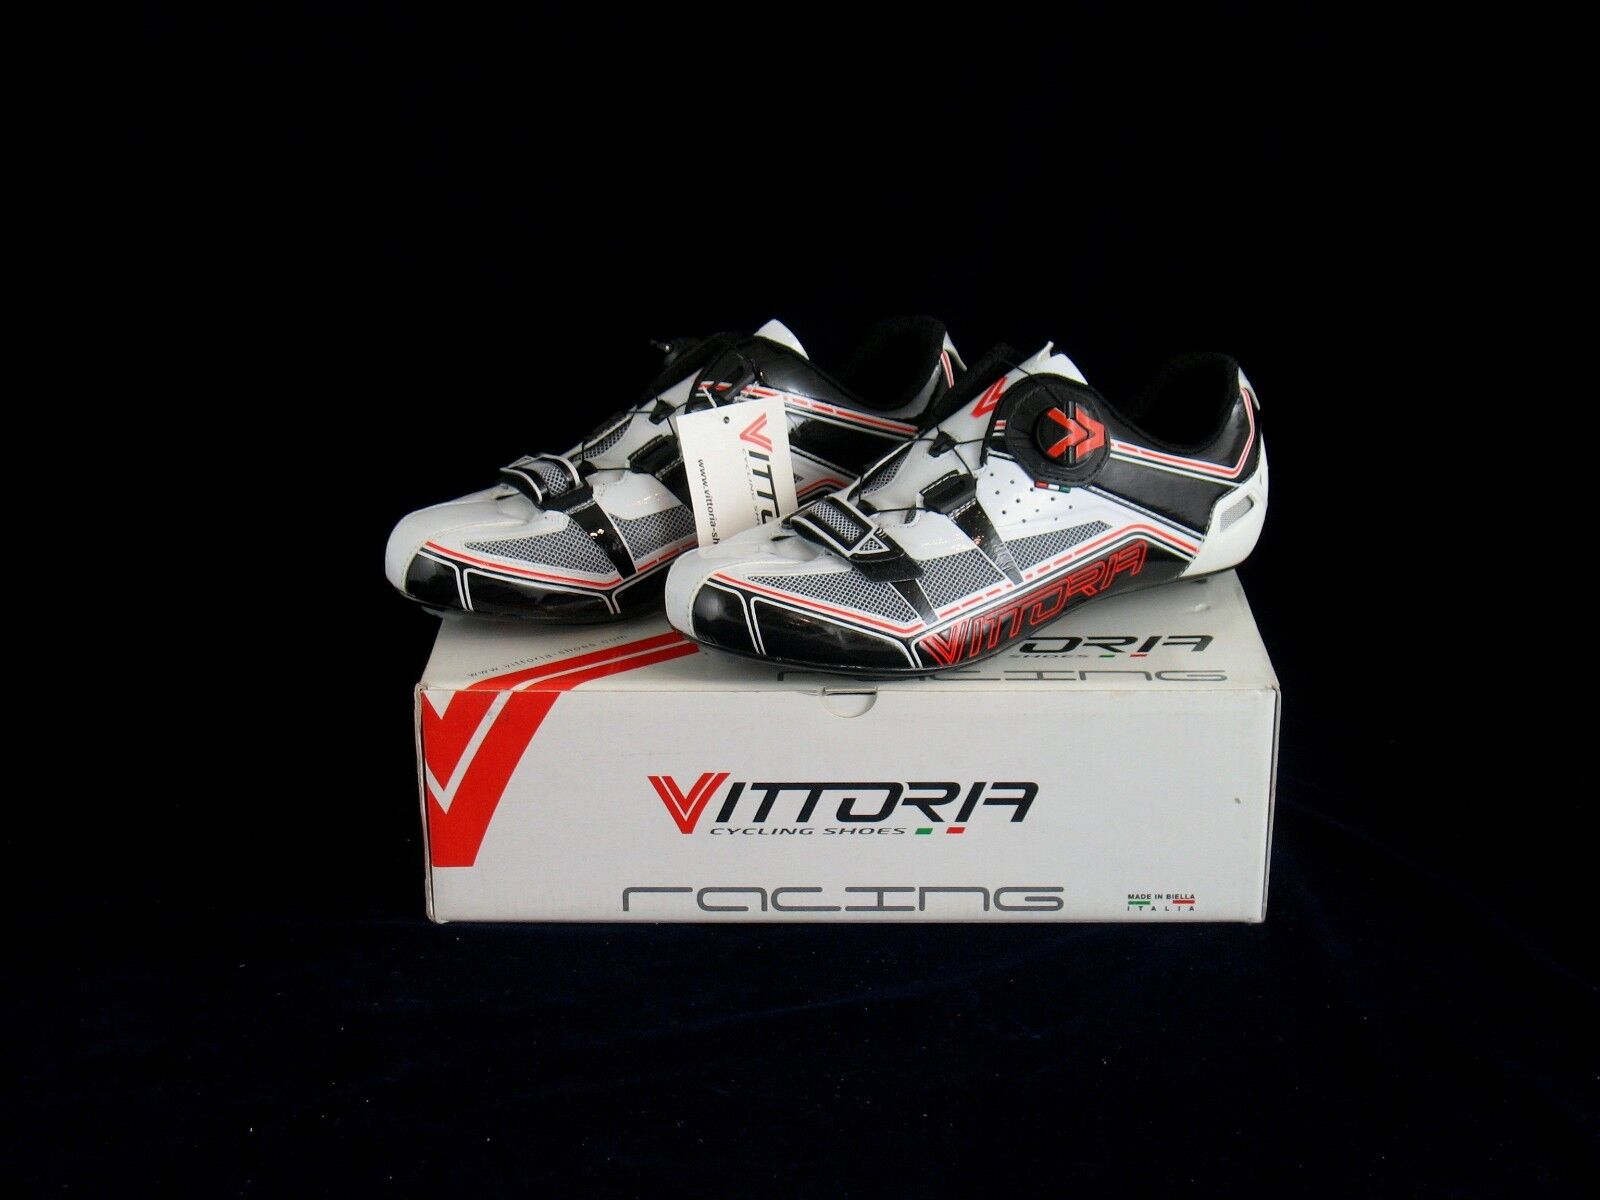 VITTORIA ITALIAN V road cycling zapatos (nos SPIRIT) 8, 8.5